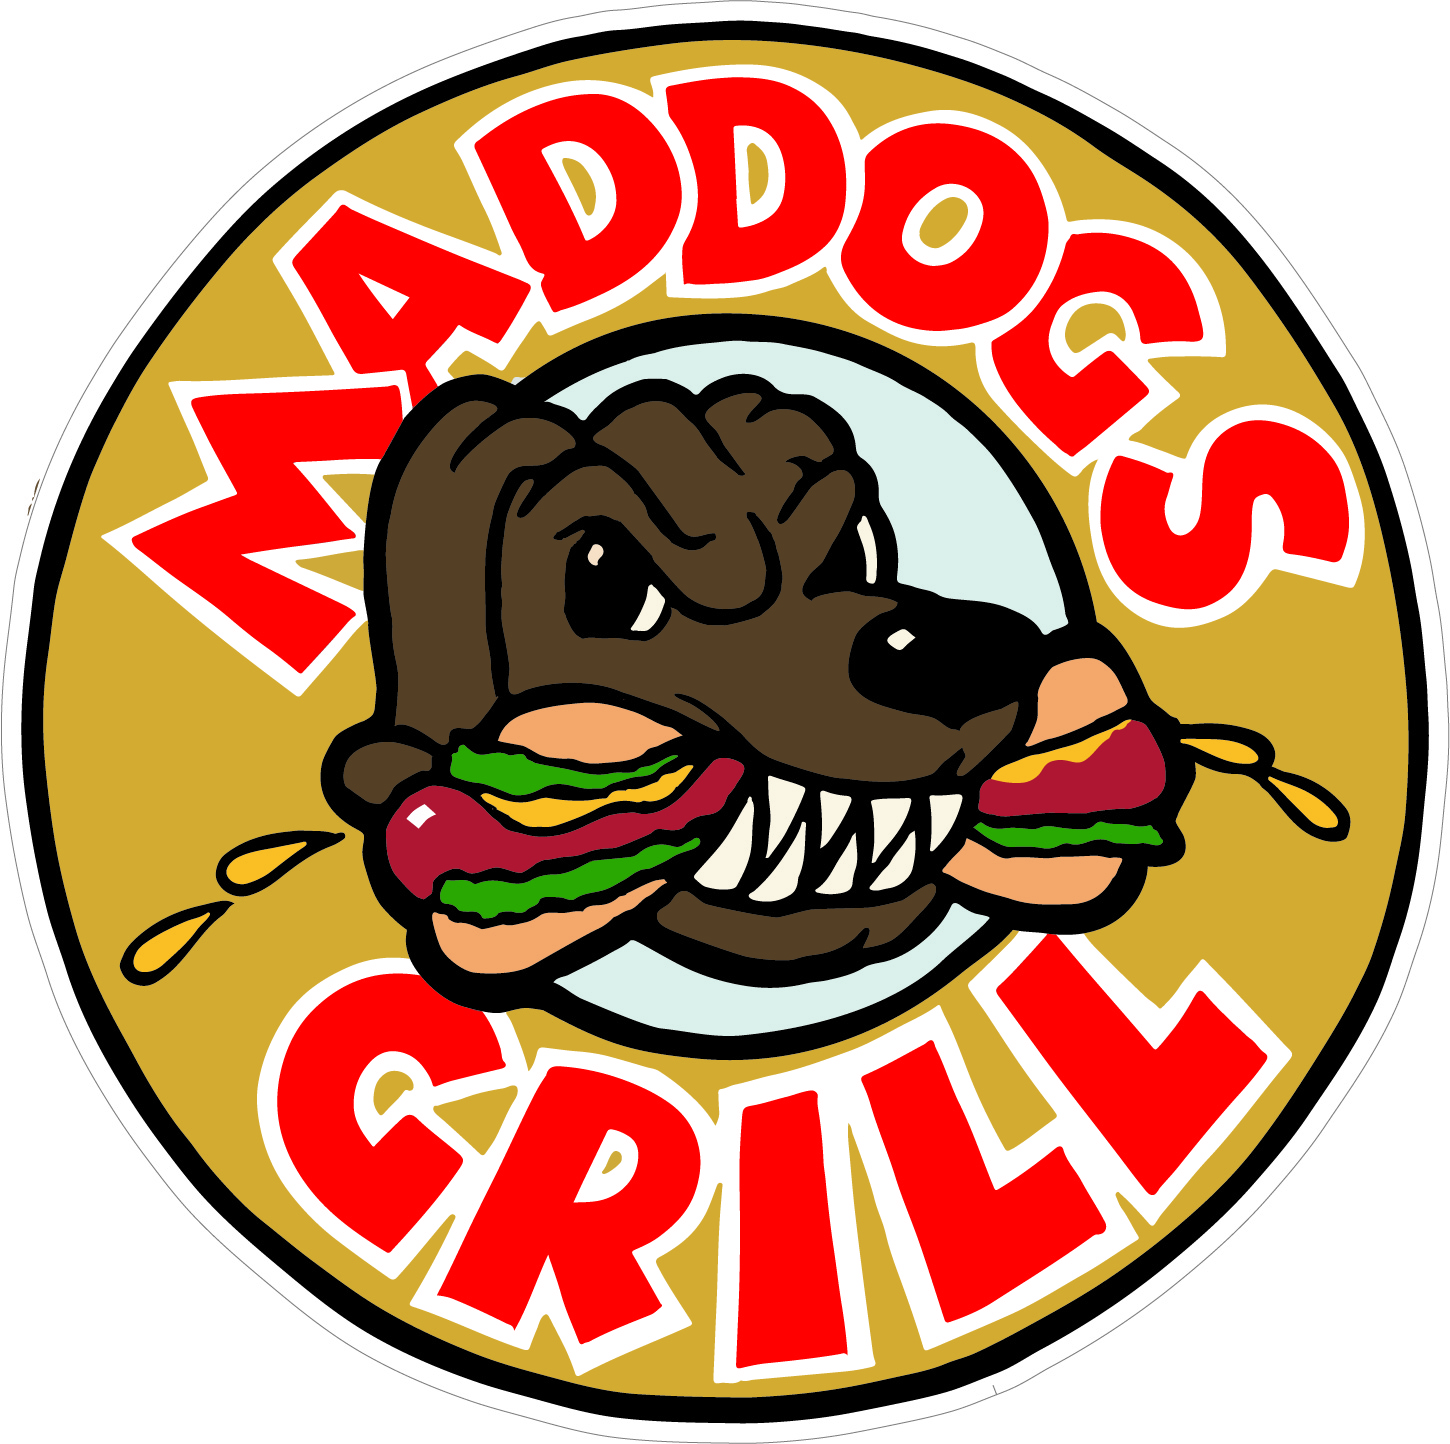 Maddogs Grill Home